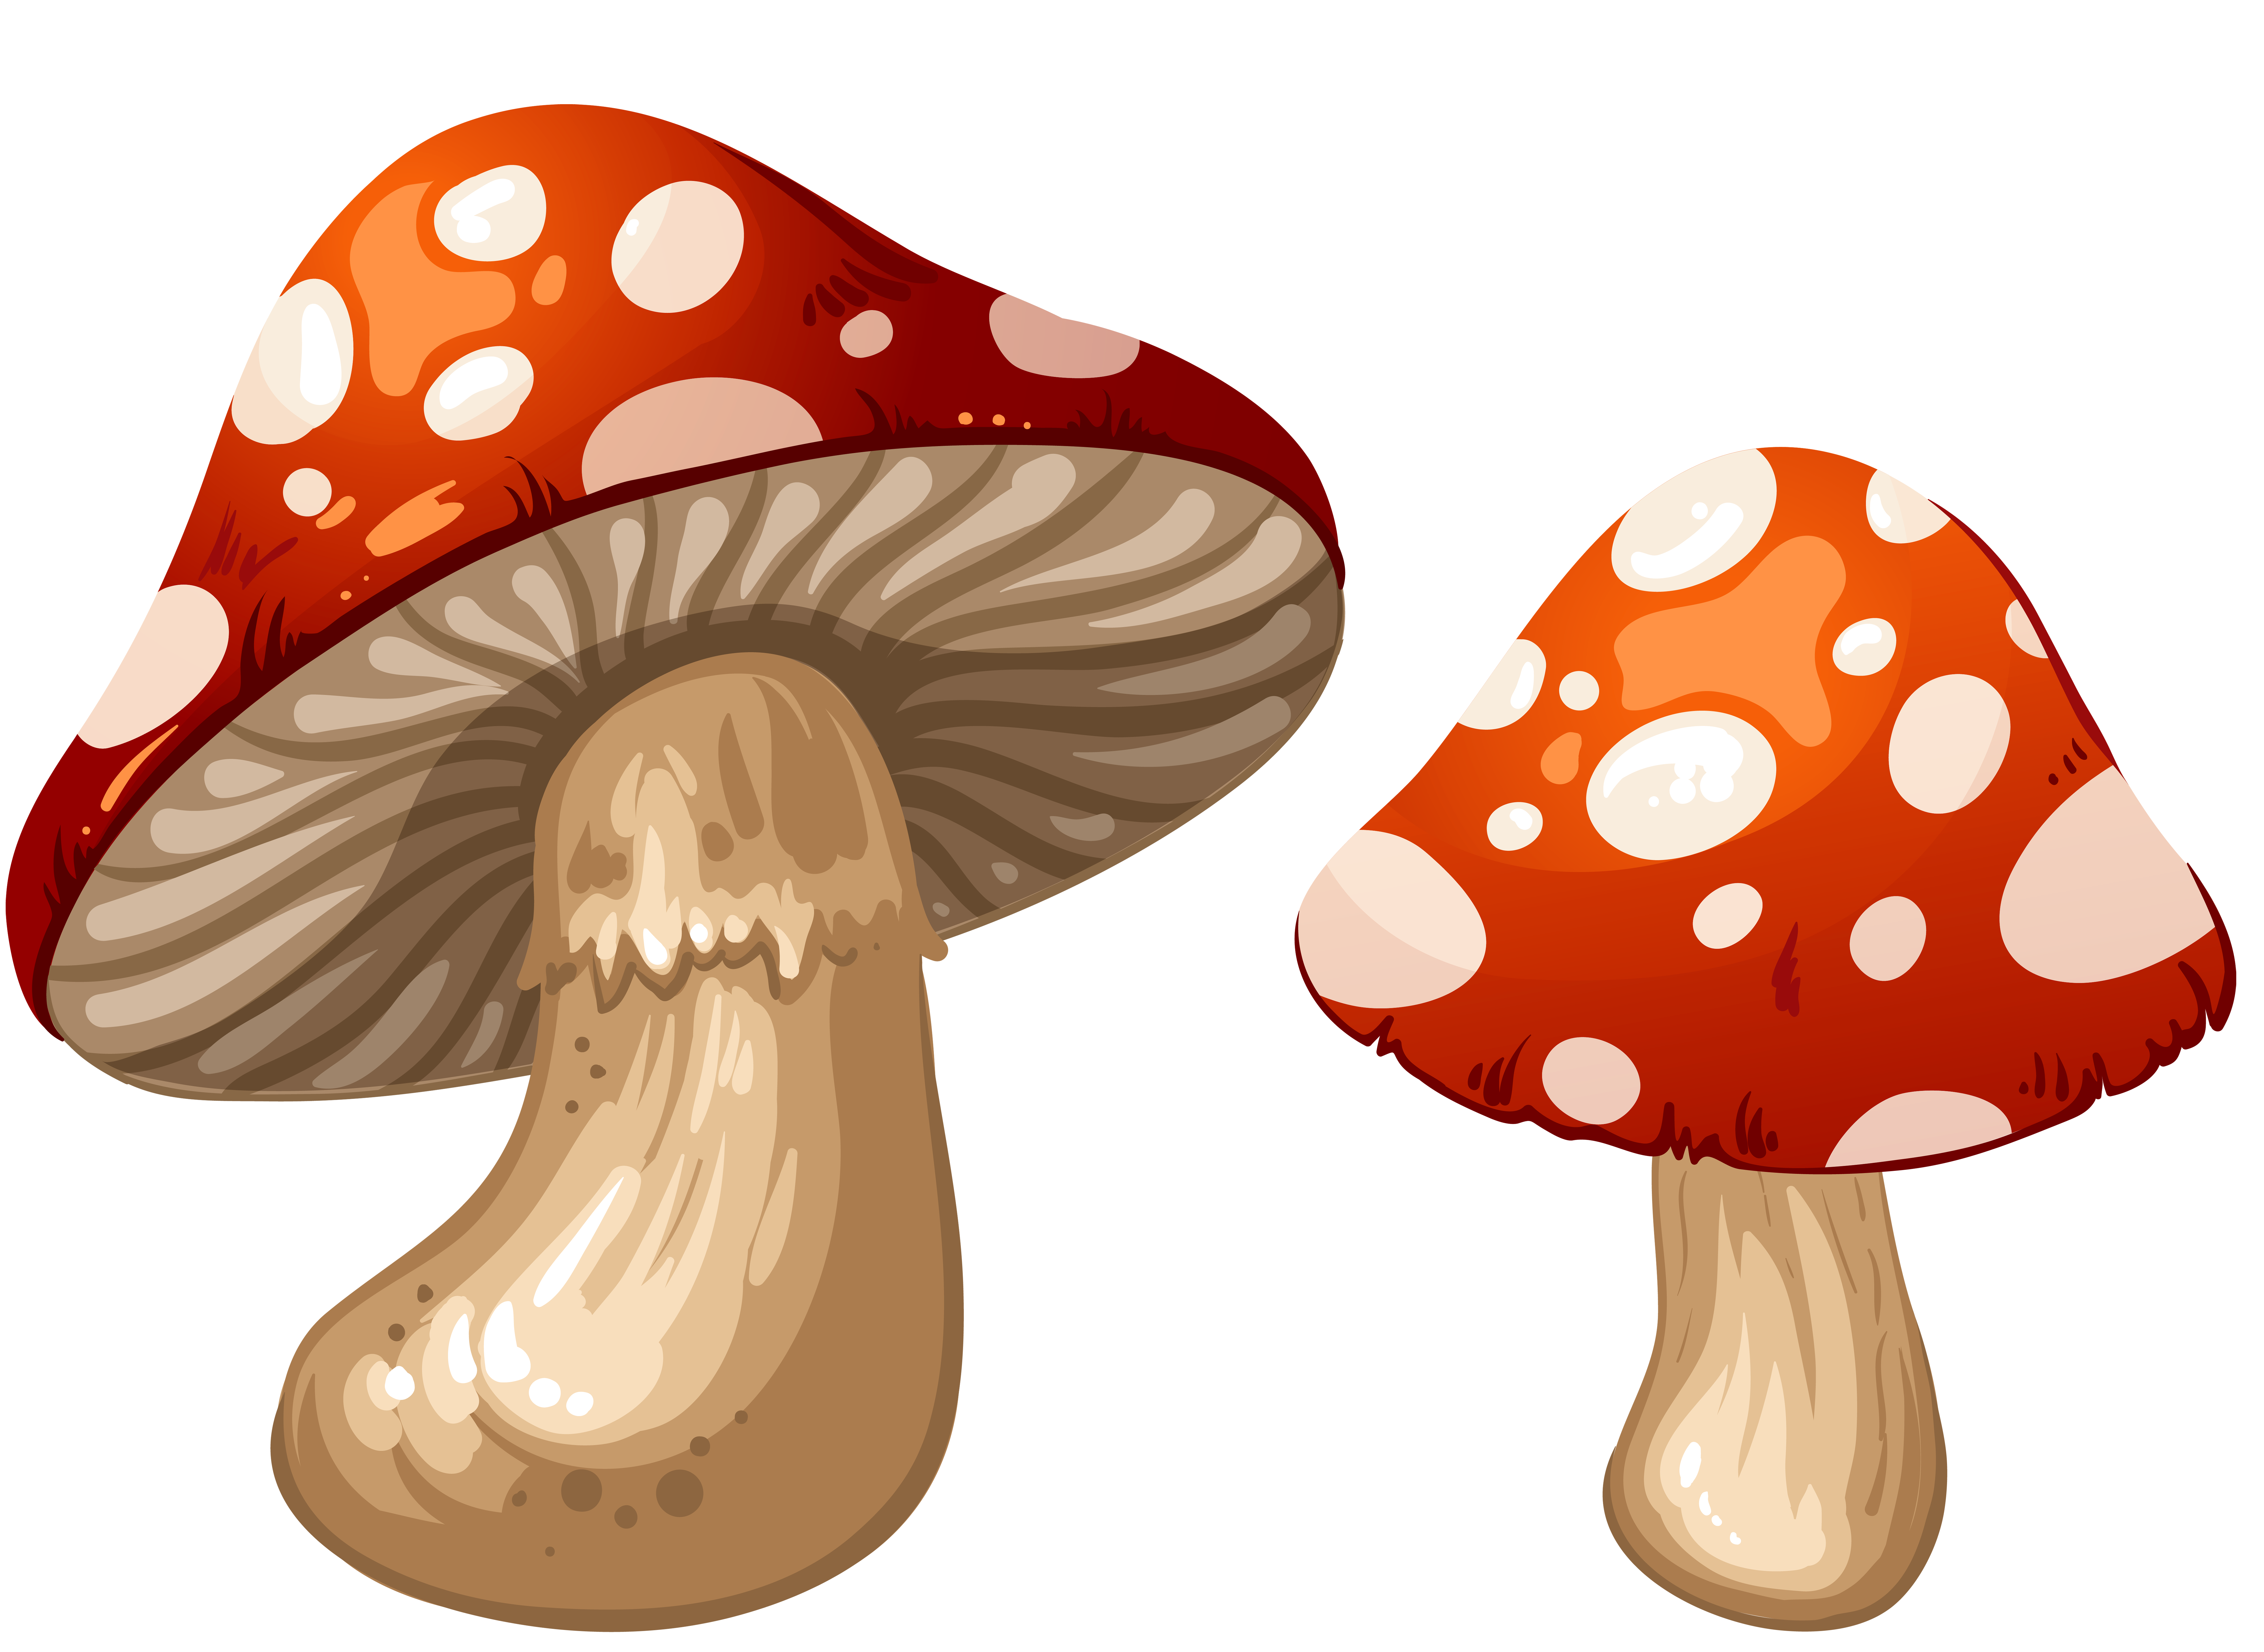 Png clip art best. Mushrooms clipart smiley face